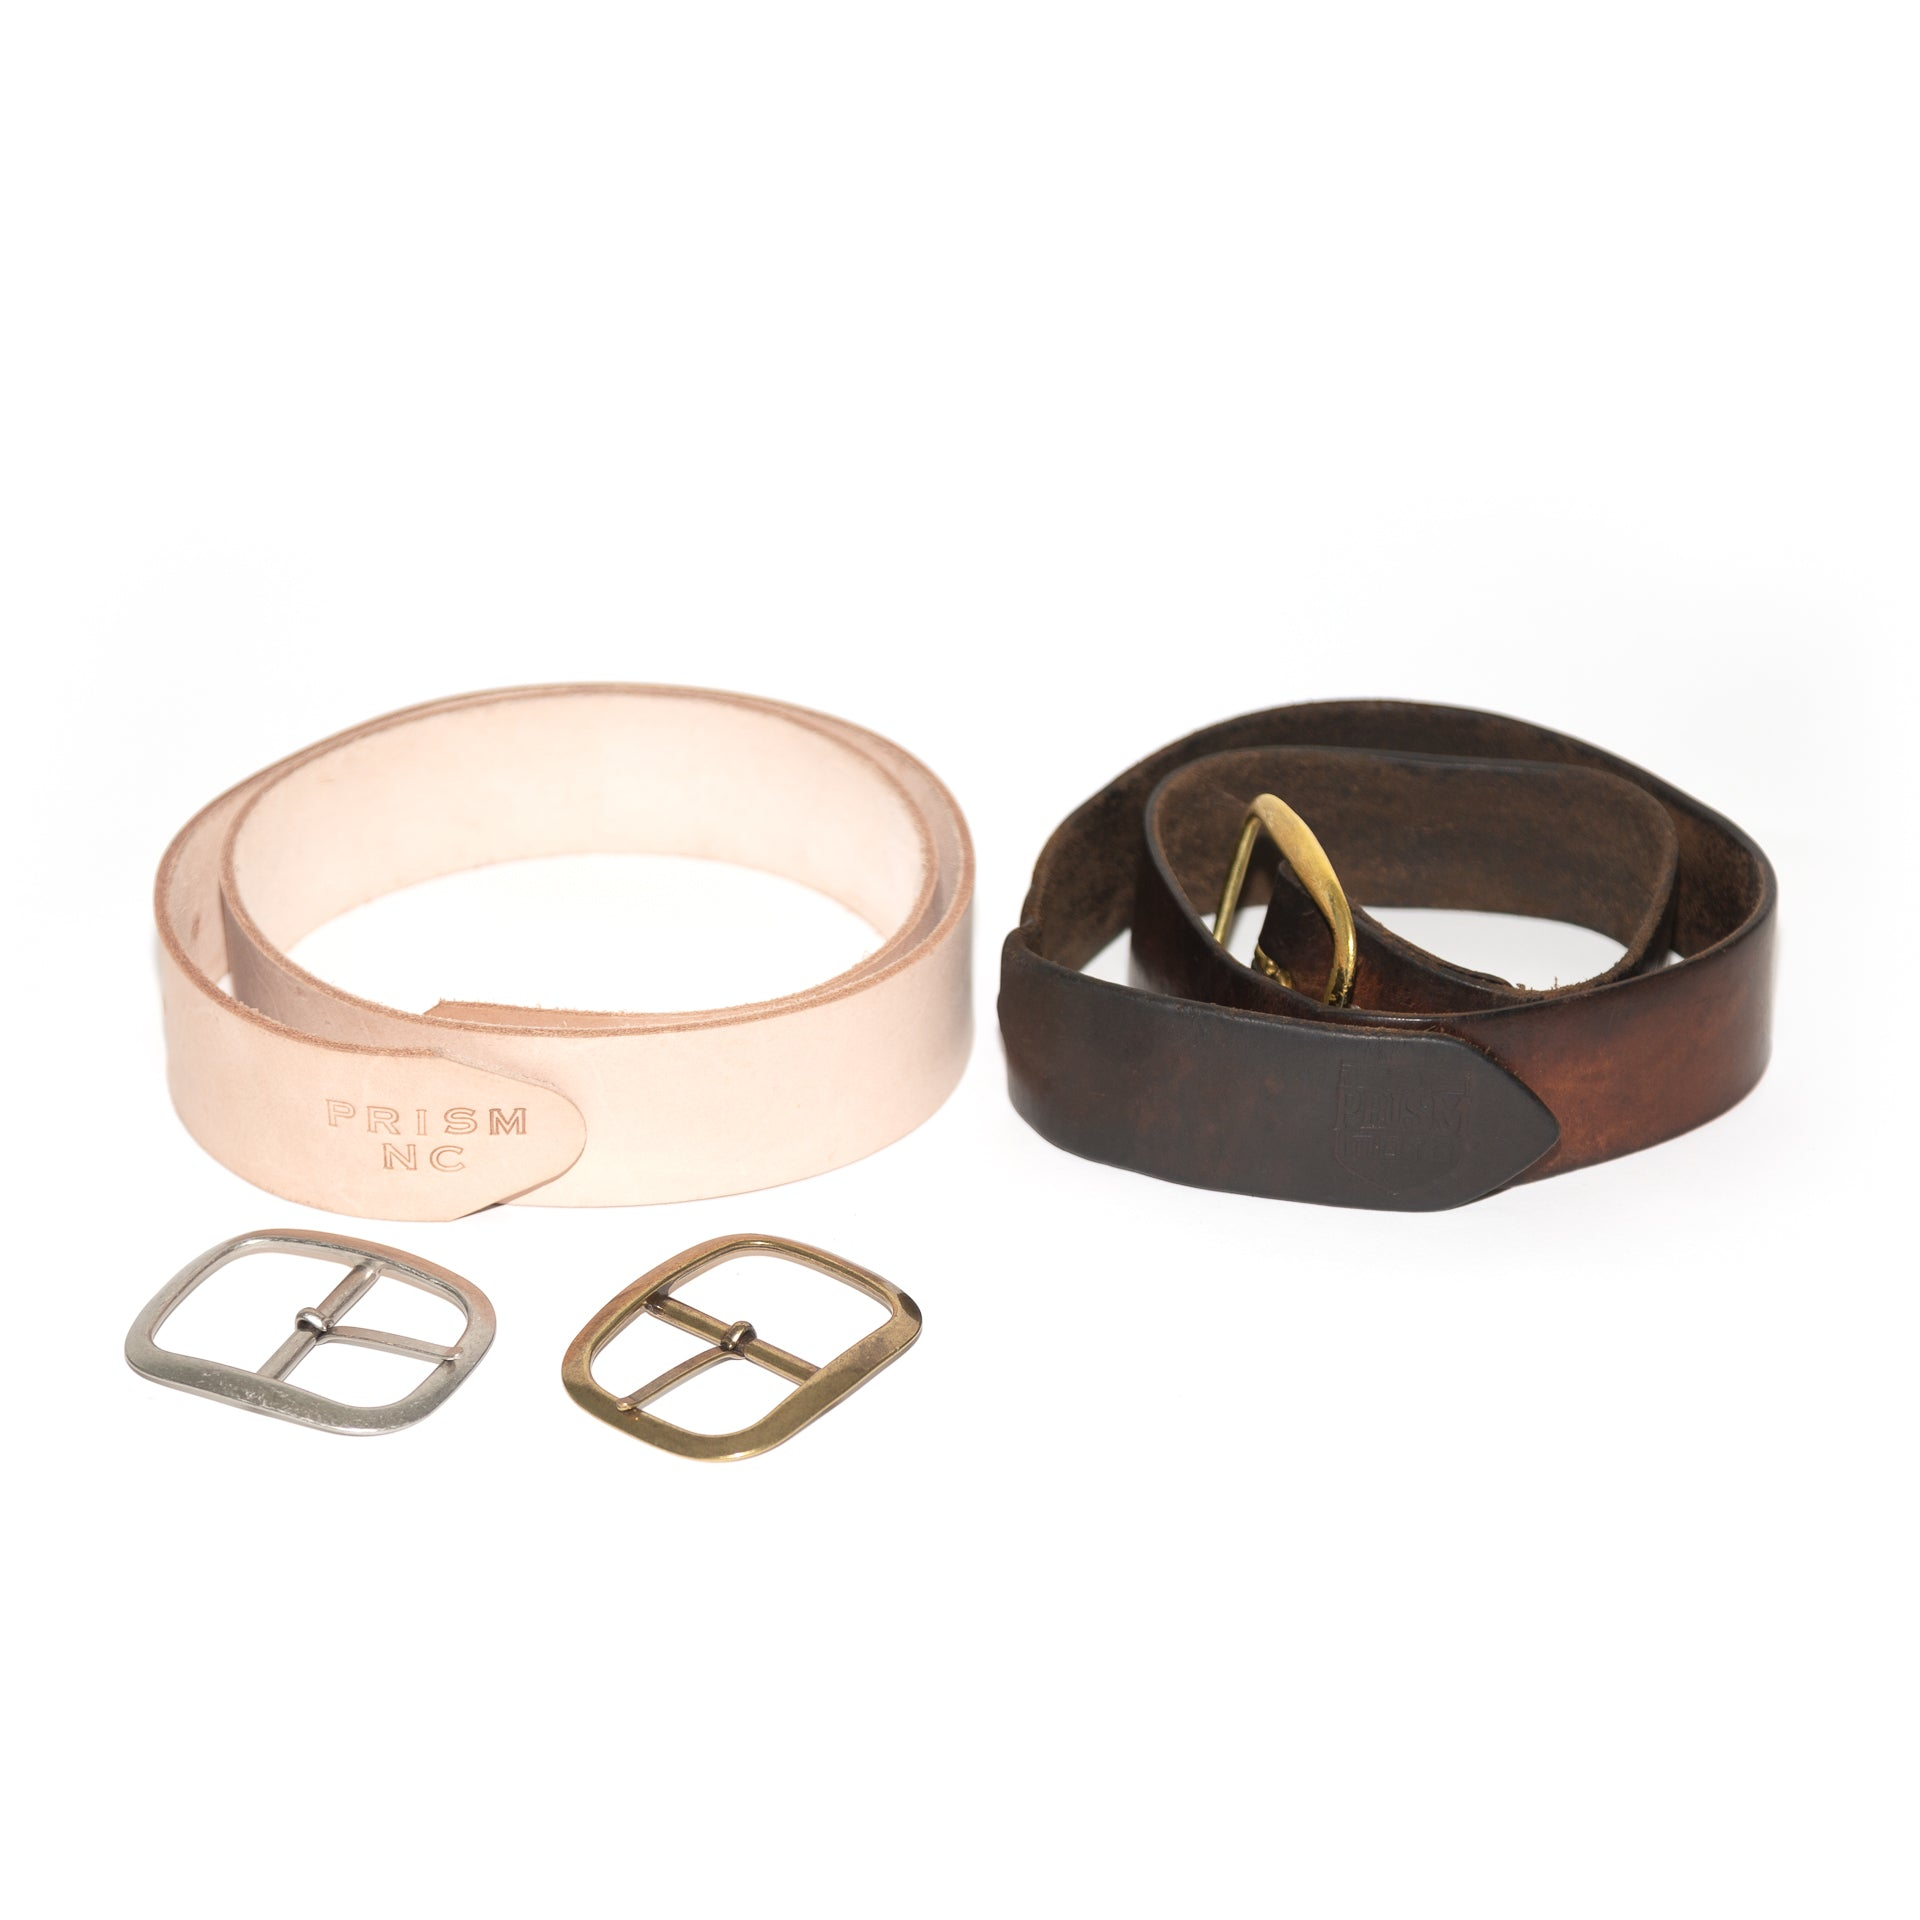 Workman's Belt - Apparel and Accessories - Prism Supply